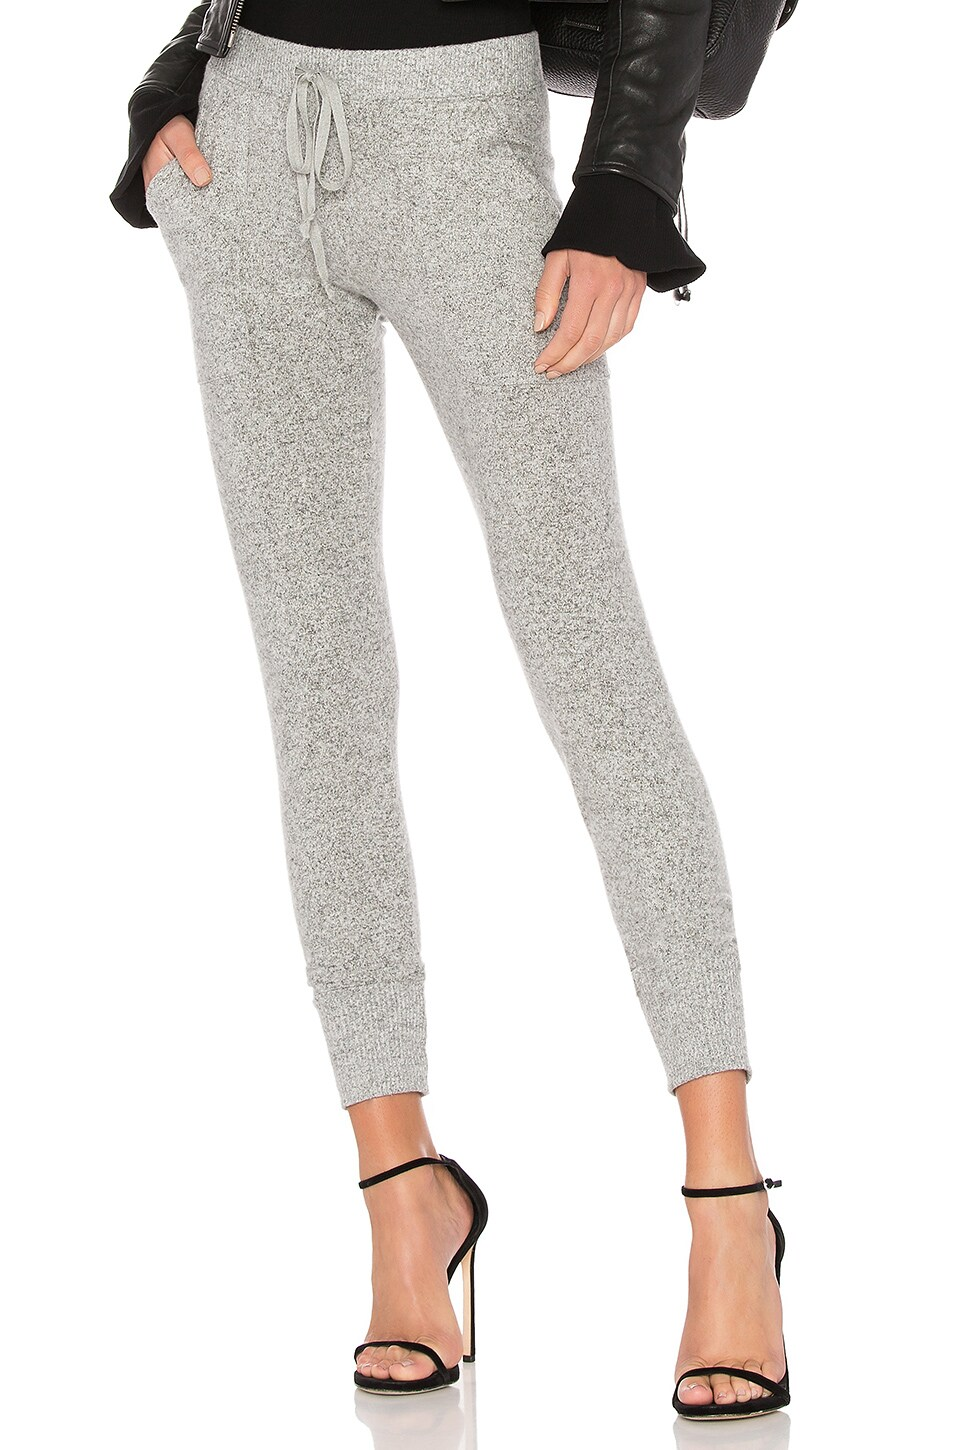 Joie Tendra Knit Pant in Heather Grey